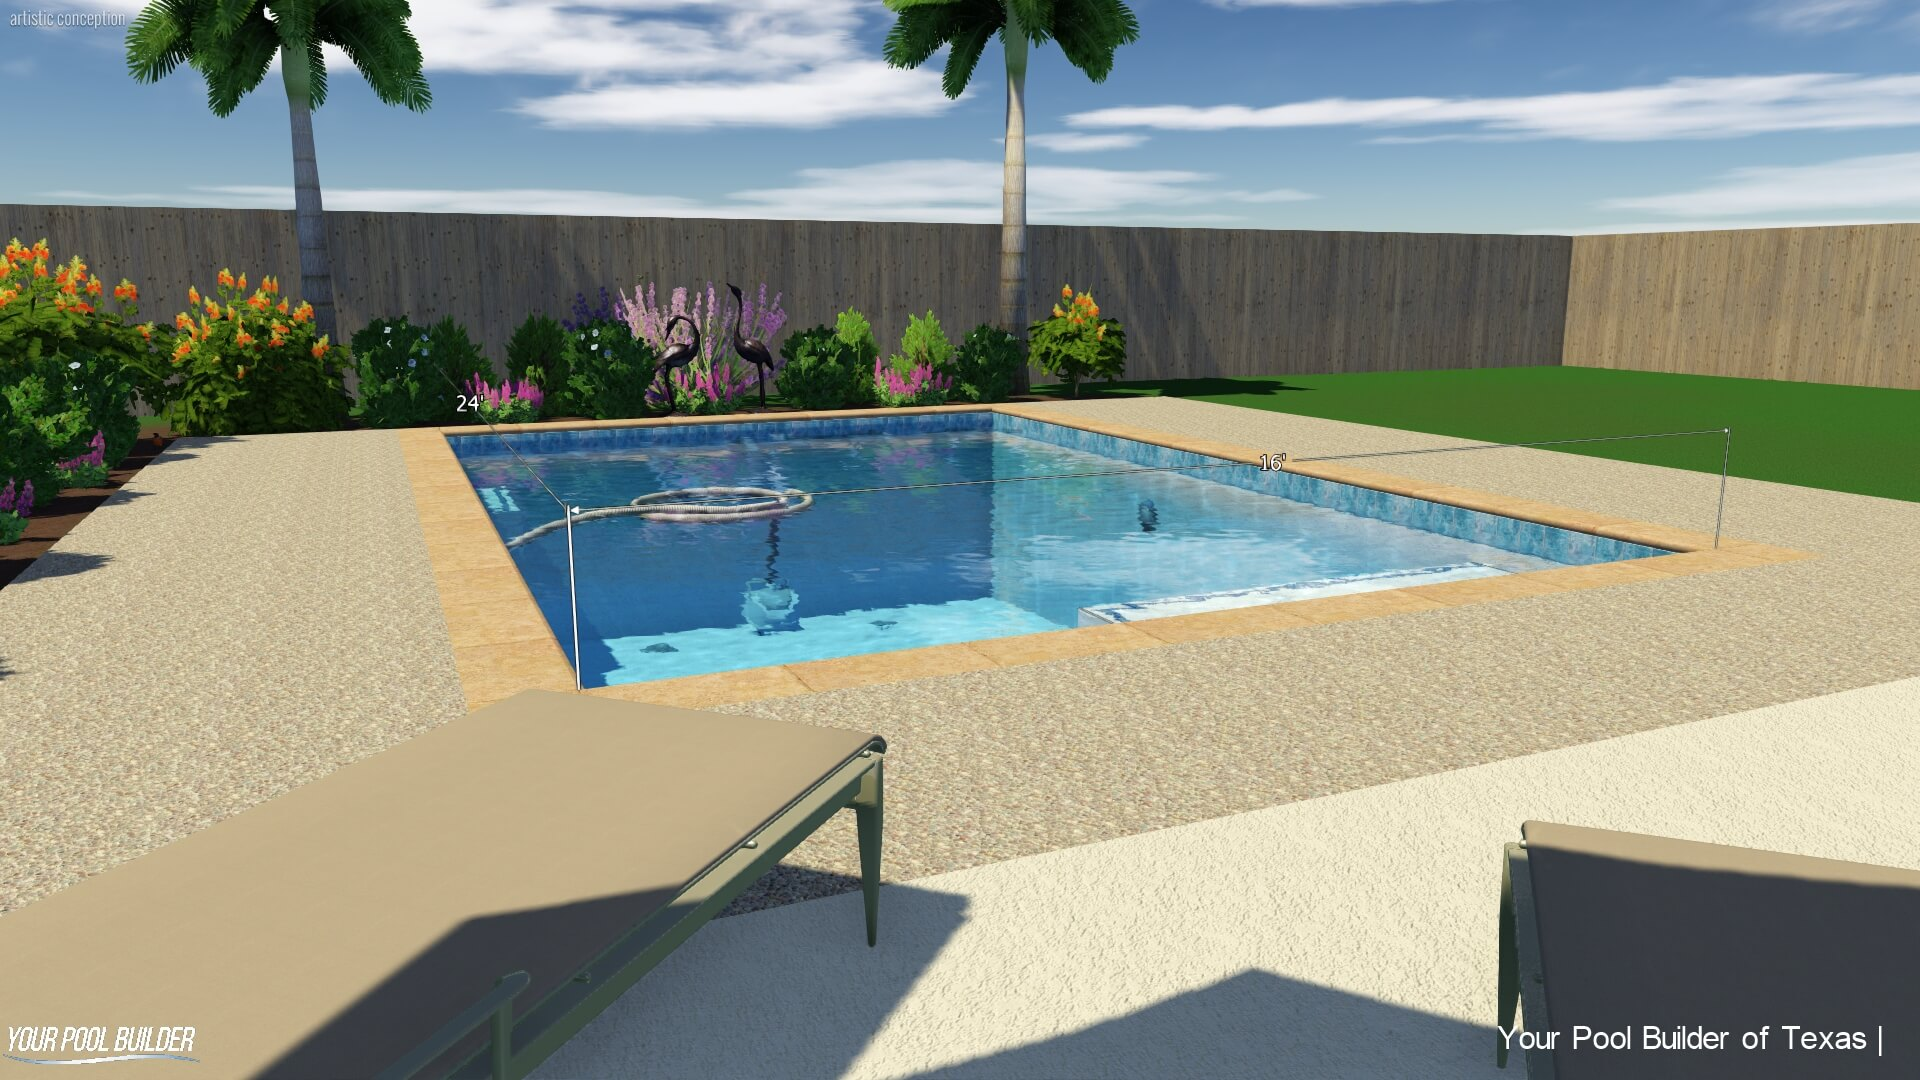 Basic Pool Construction Package | Texas New Pool ...